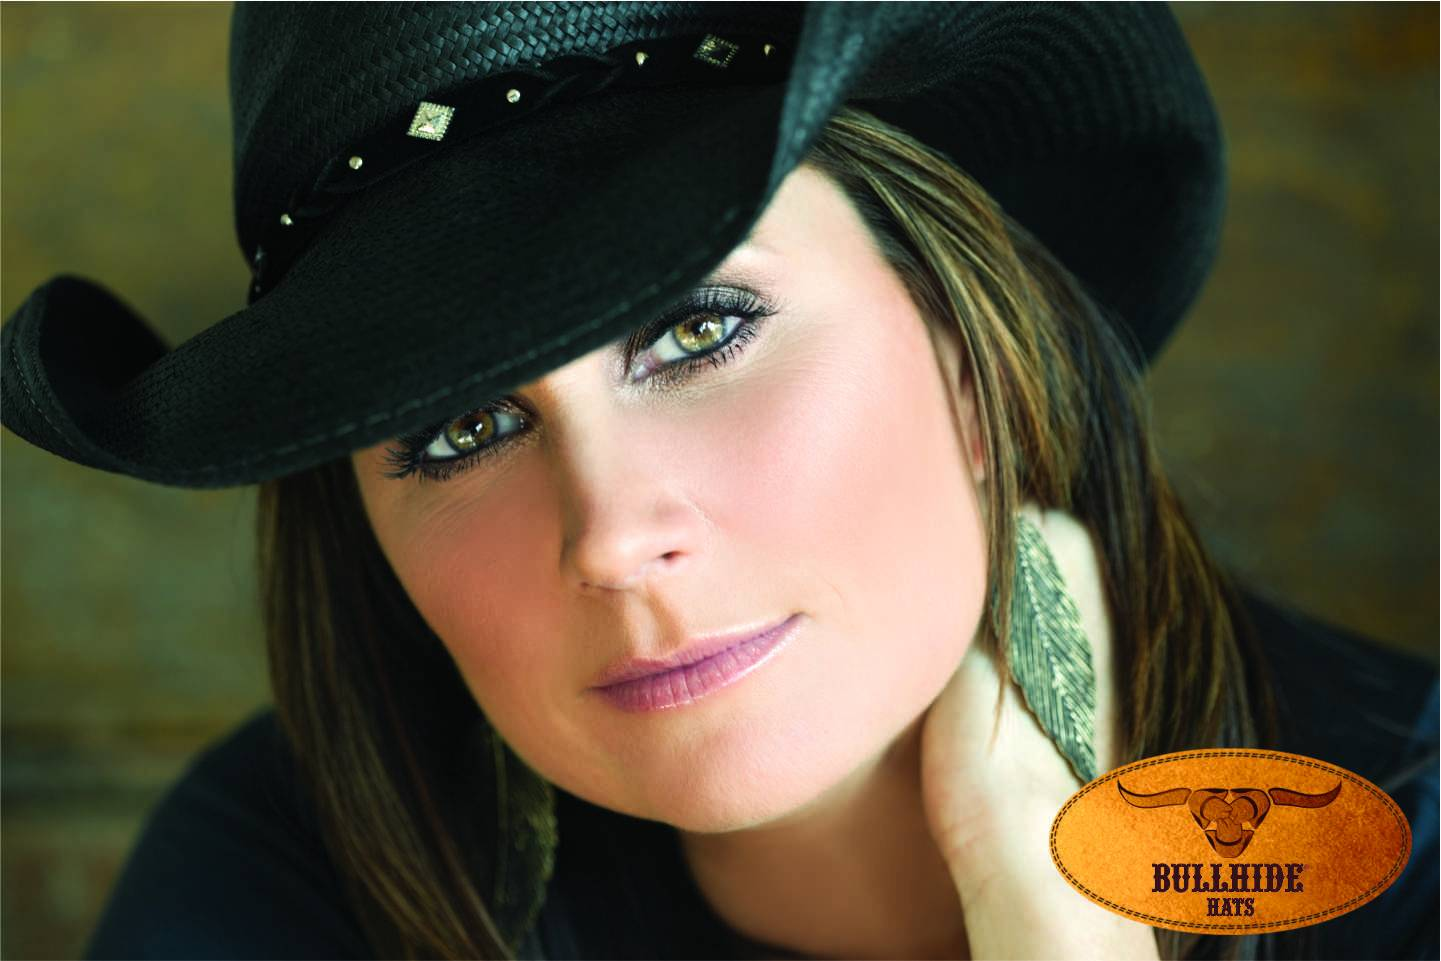 Bullhide Emotional Girl Hat Terri Clark Collection